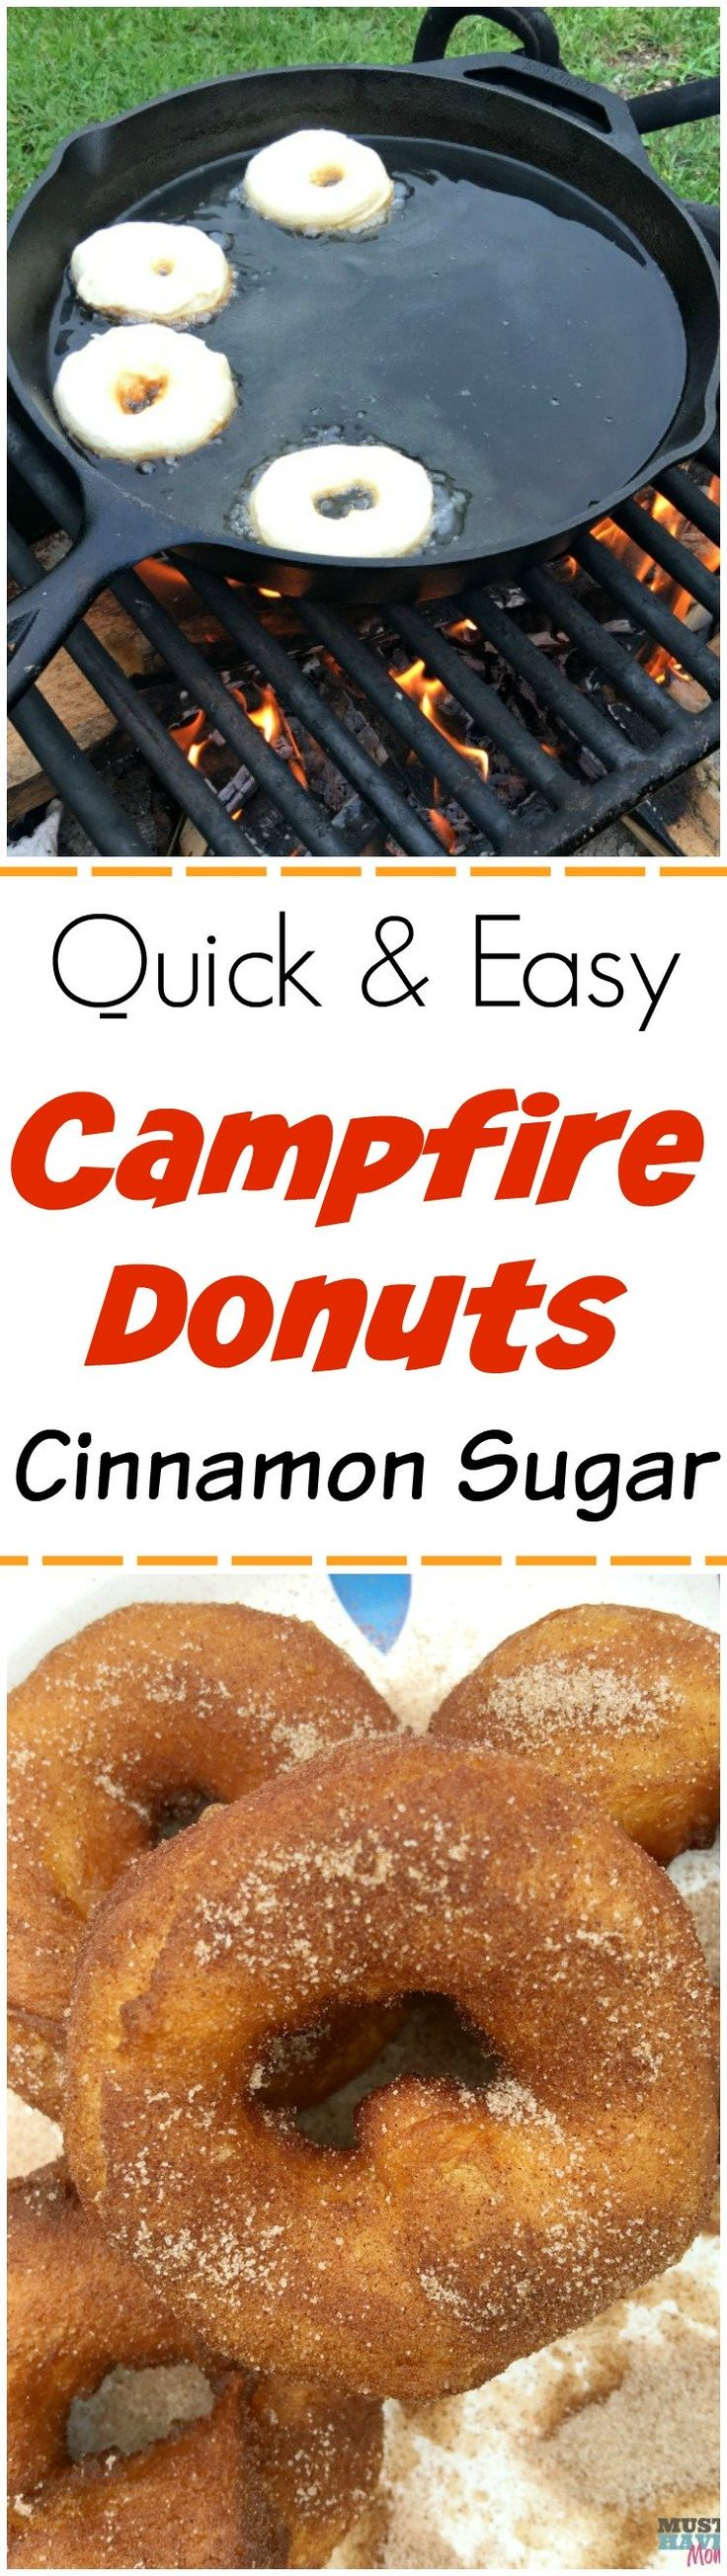 Easy campfire recipes! These campfire donuts are our kids favorite of all our camping recipes! Great camping breakfast or dessert idea. via @musthavemom